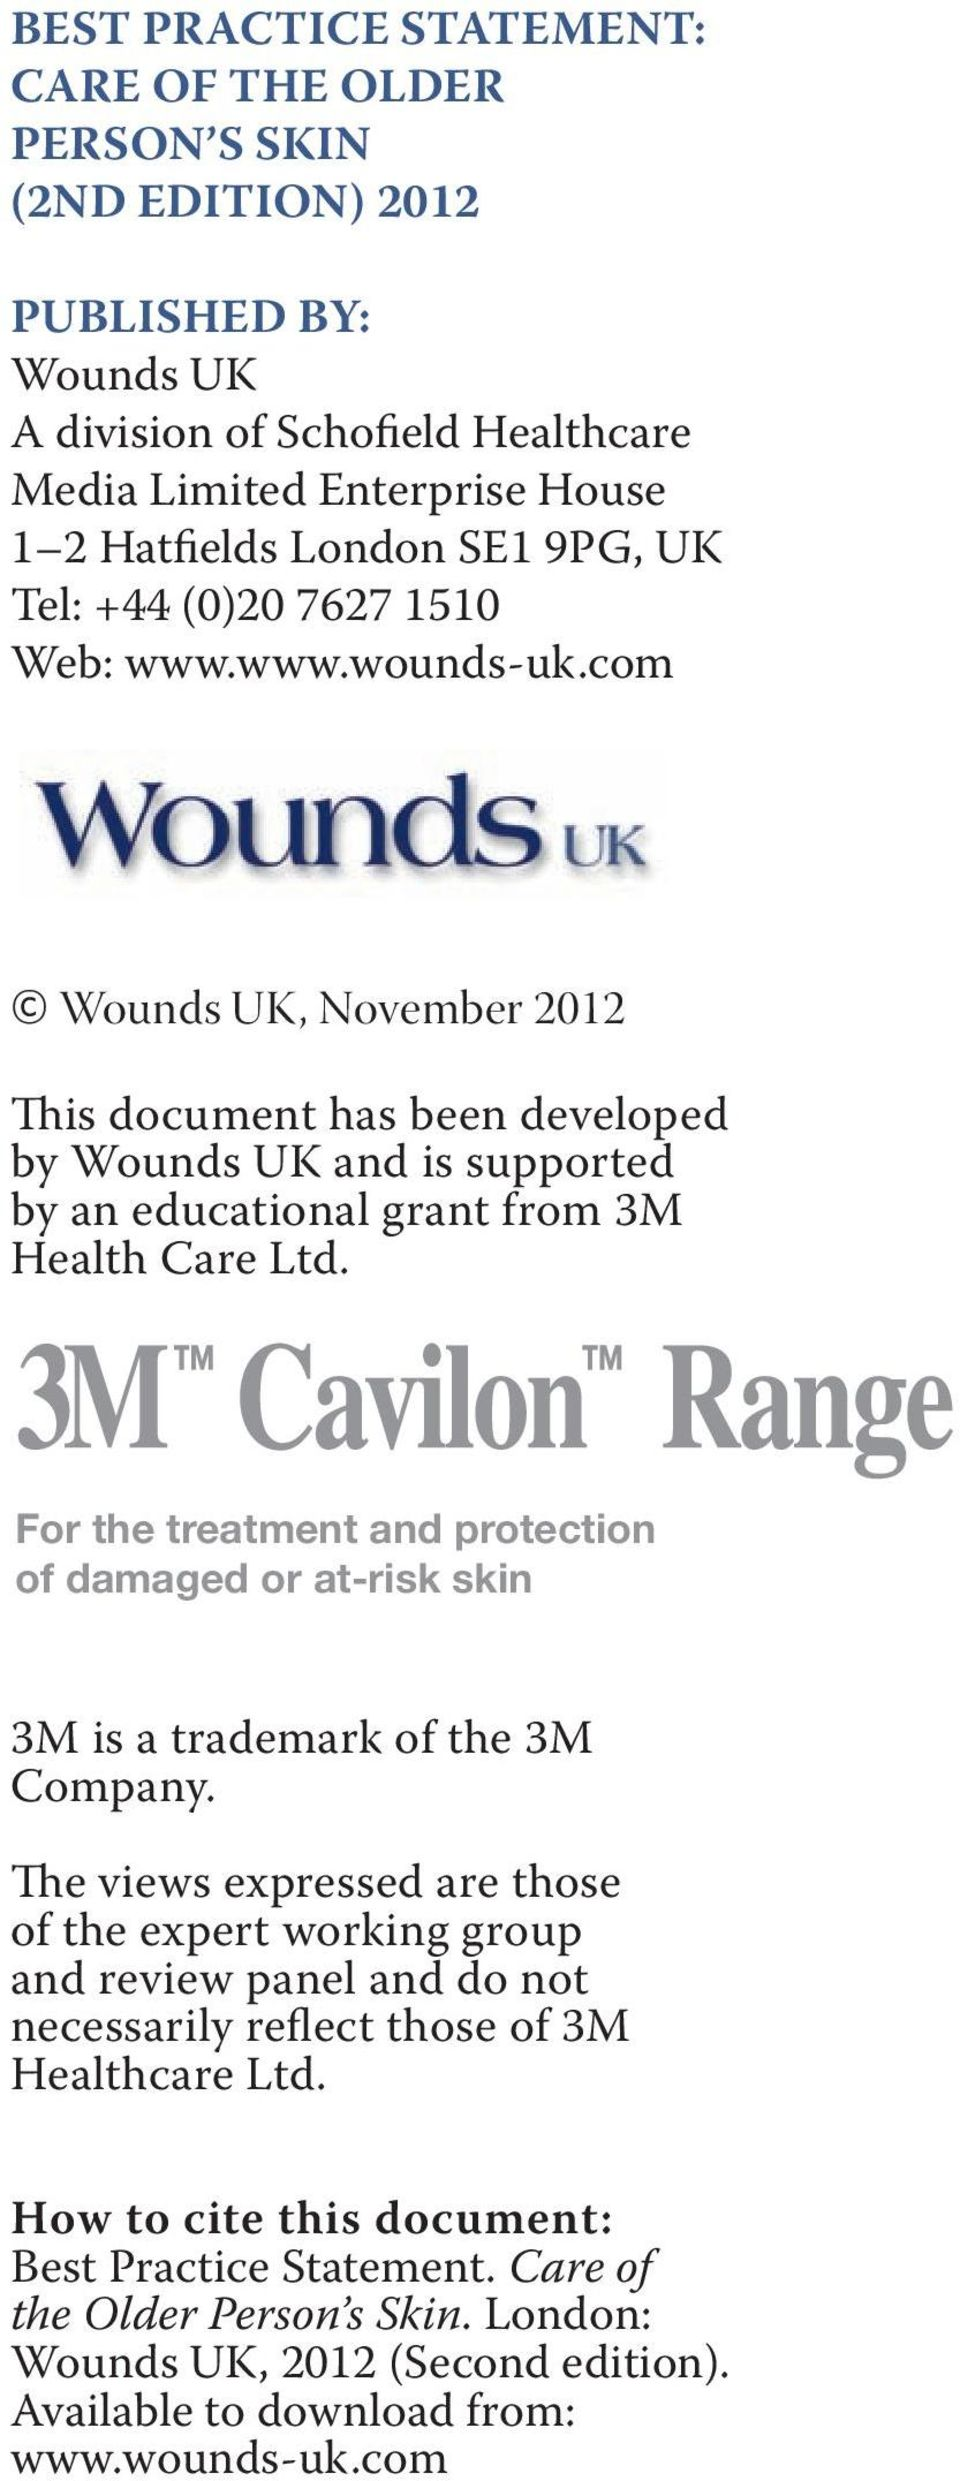 For the treatment and protection of damaged or at-risk skin 3M is a trademark of the 3M Company.